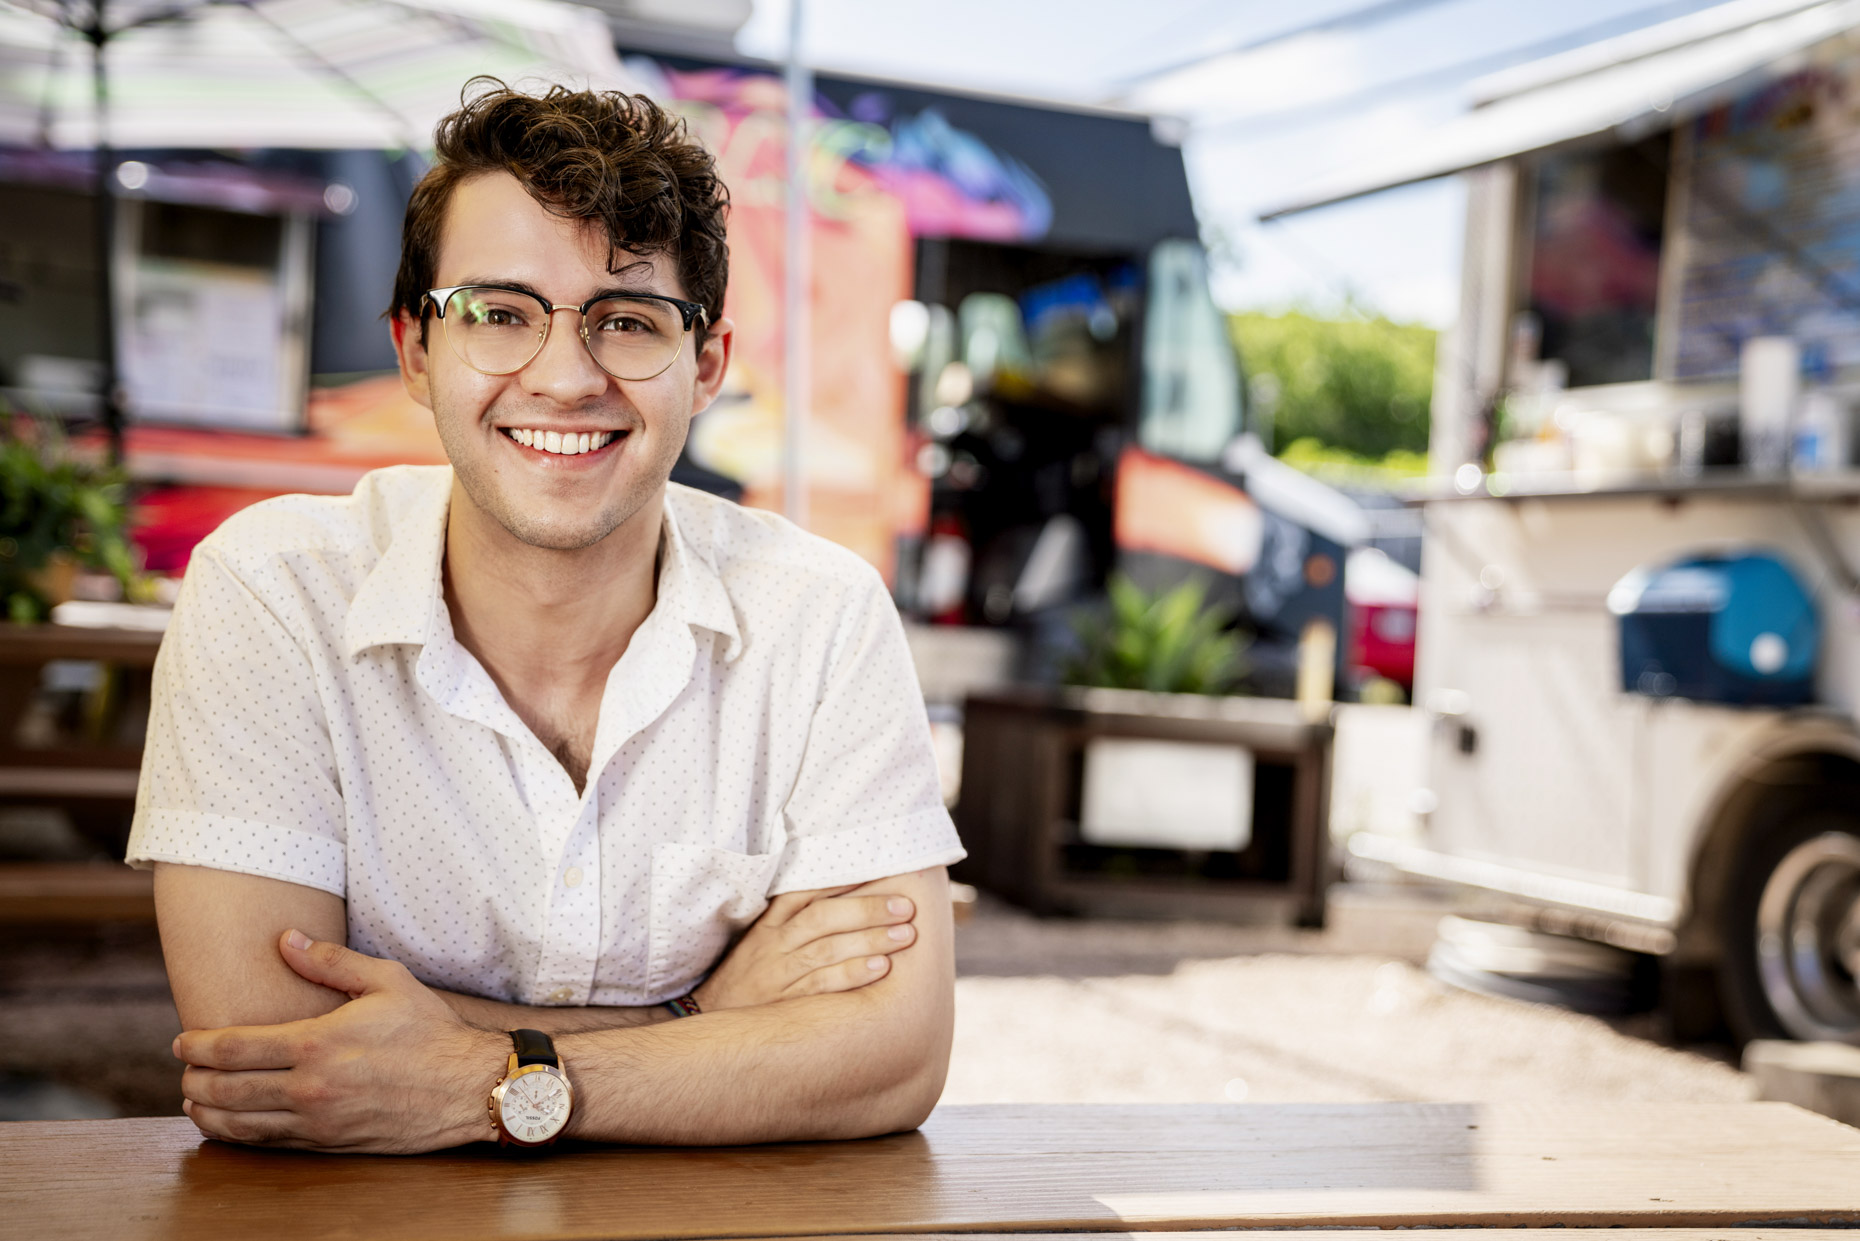 Smiling man in glasses sitting in front of food truck